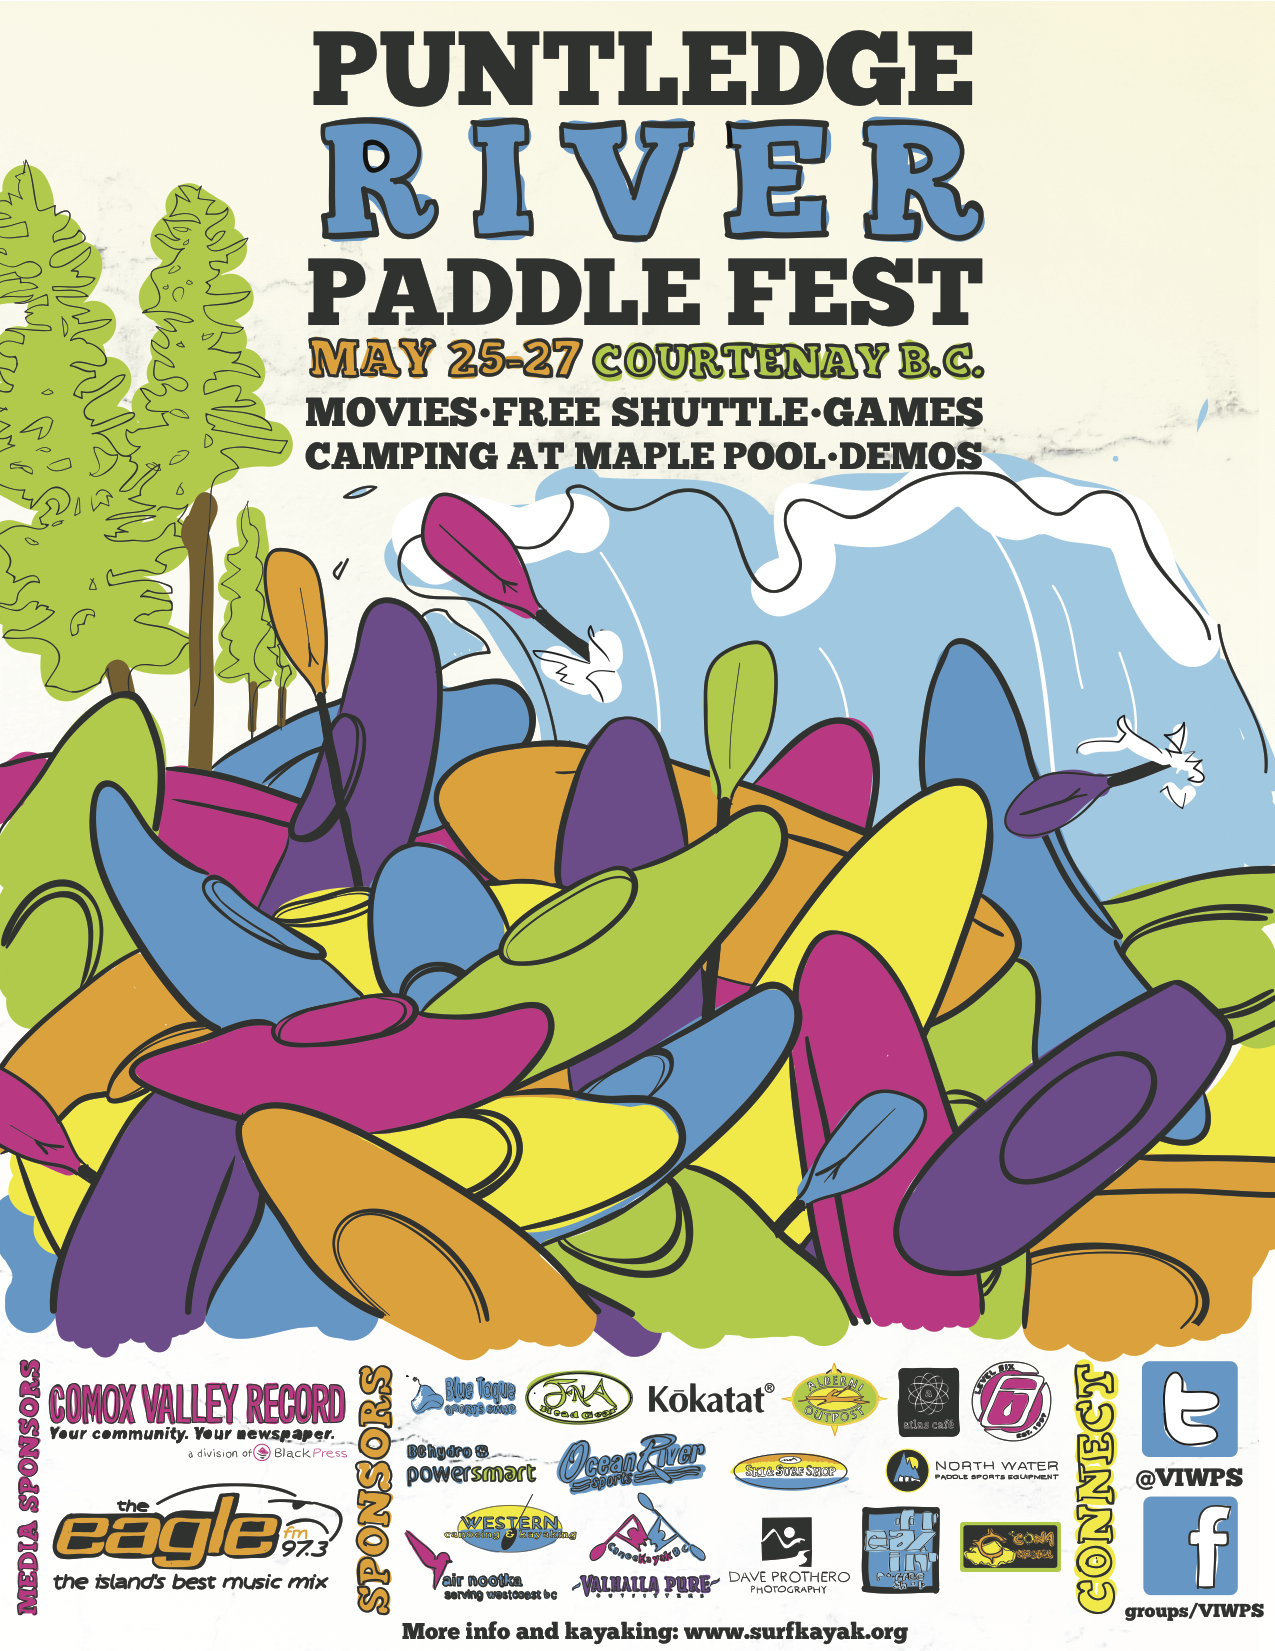 8th annual Puntledge River Paddle Festival